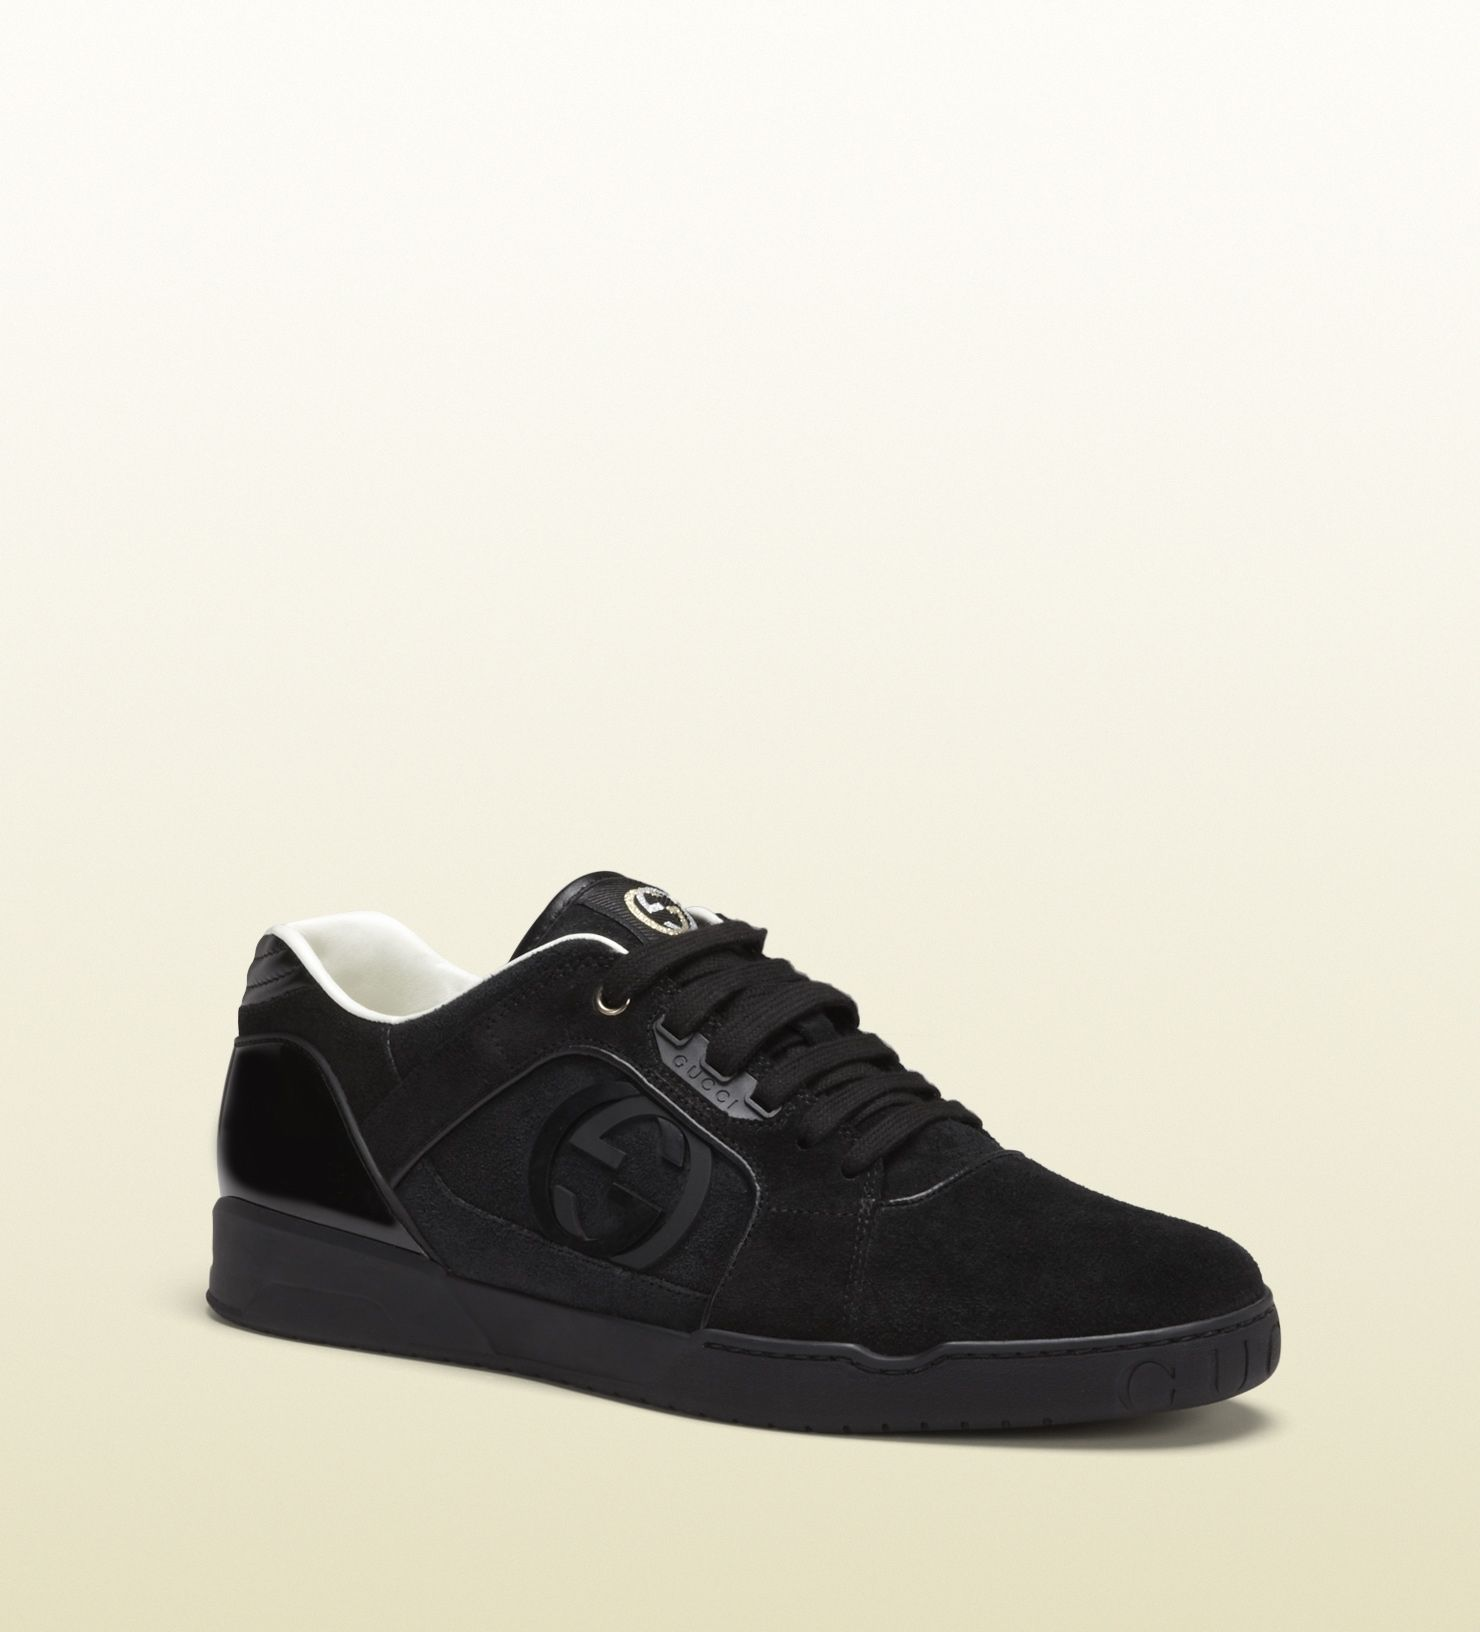 Gucci 309457 Coa50 1000 Black Suede Lace Up Sneaker Black Suede With Black Leather Trim Made In Italy Rubb Gucci Men Shoes Gucci Men Mens Designer Shoes